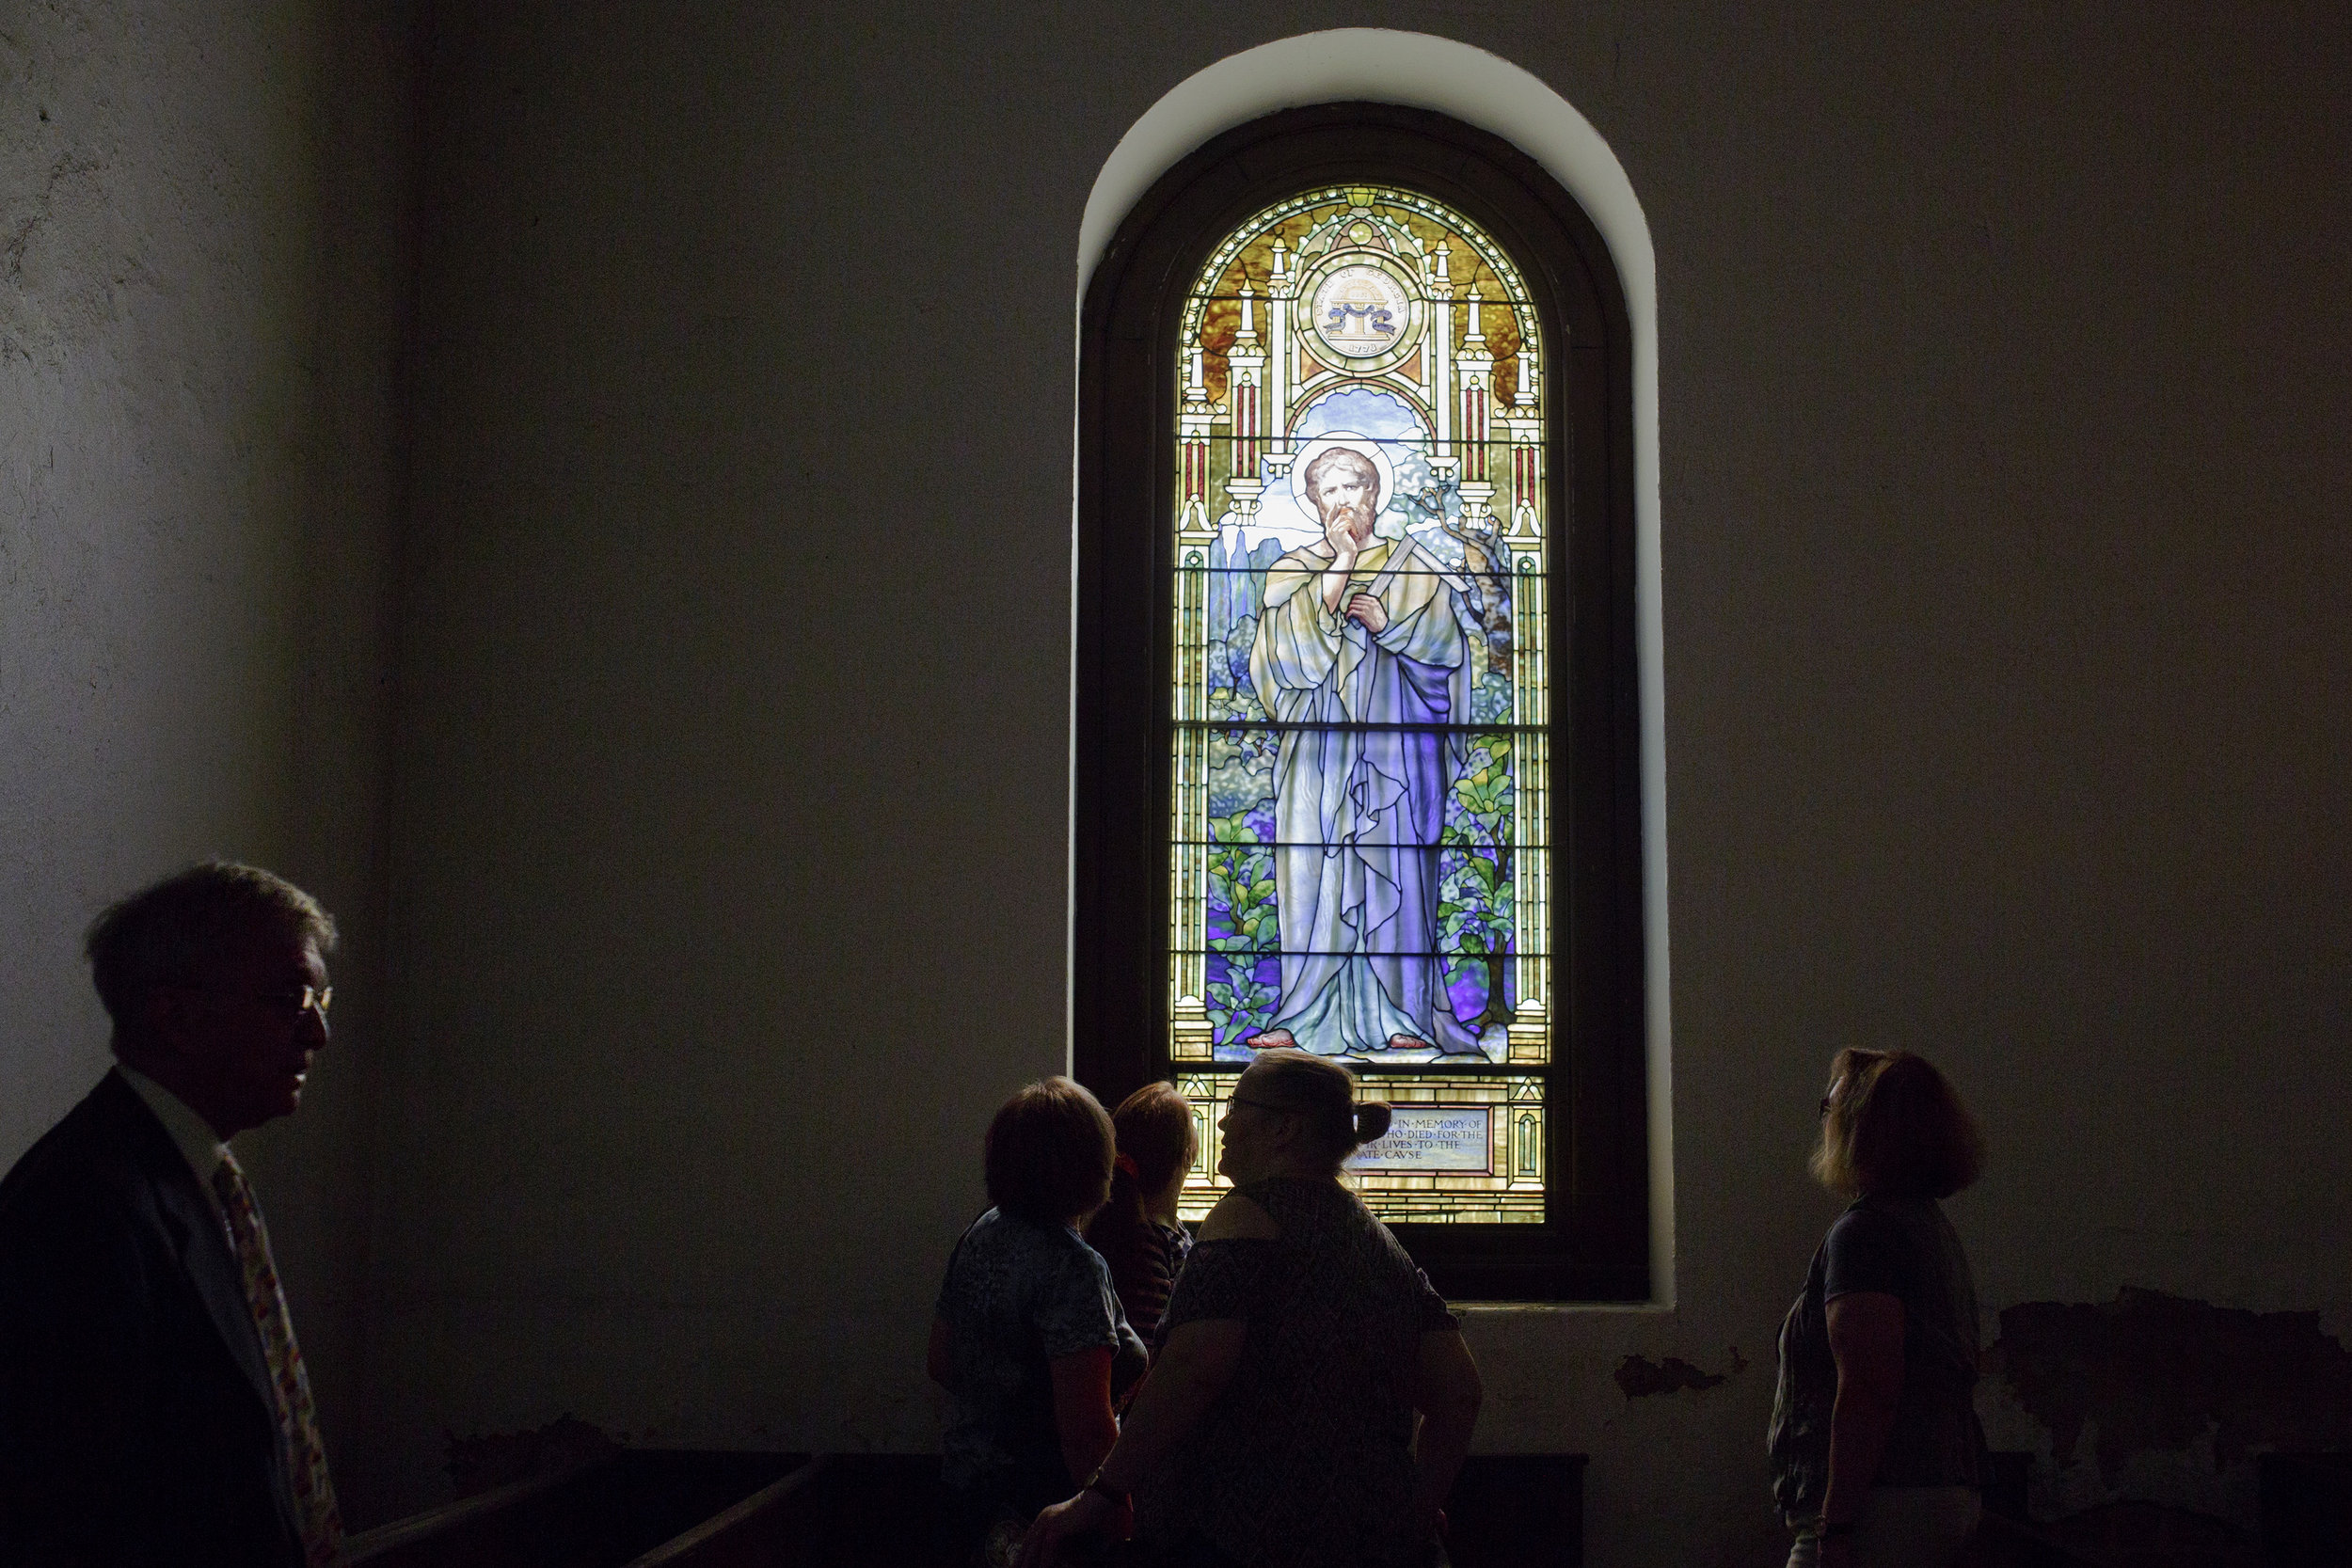 A tour is given of the Blandford Church in Petersburg, Virginia. The church is decorated with 15 Tiffany windows, created by Louis Tiffany in New York City, and the city of Petersburg observes Memorial Day each year on June 9.